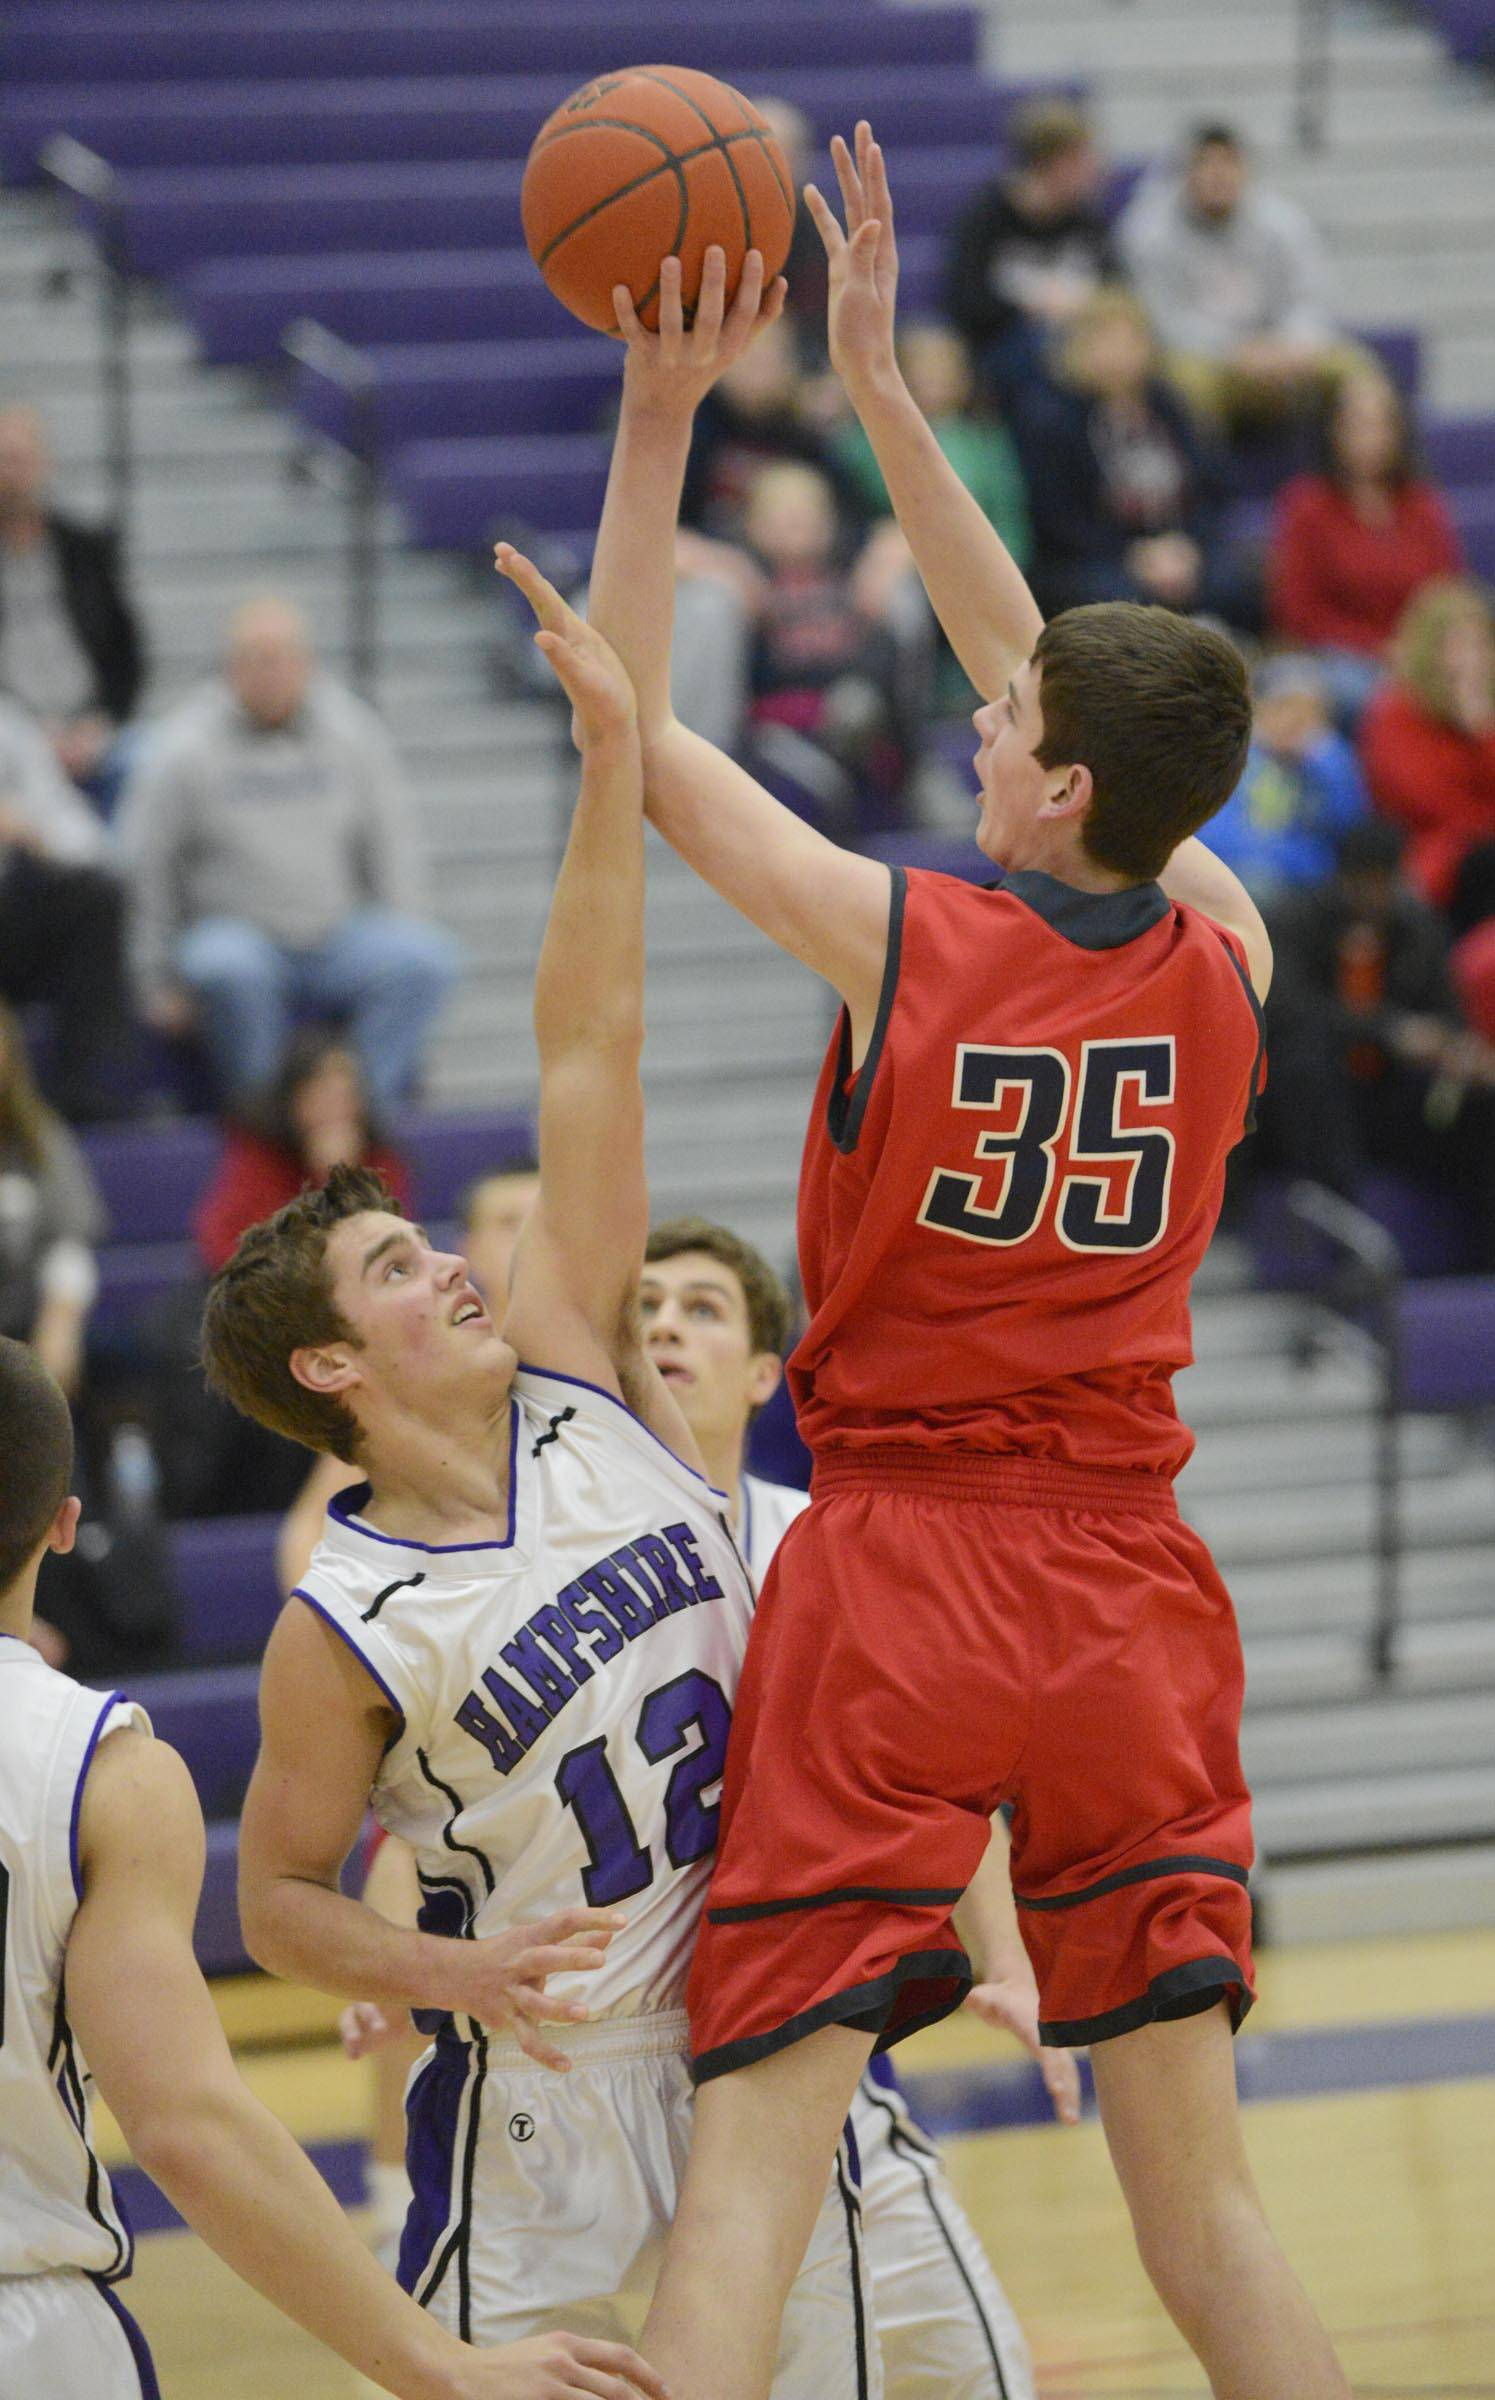 South Elgin's Tyler Hankins turns and shoots over Hampshire's Matthew Bridges.